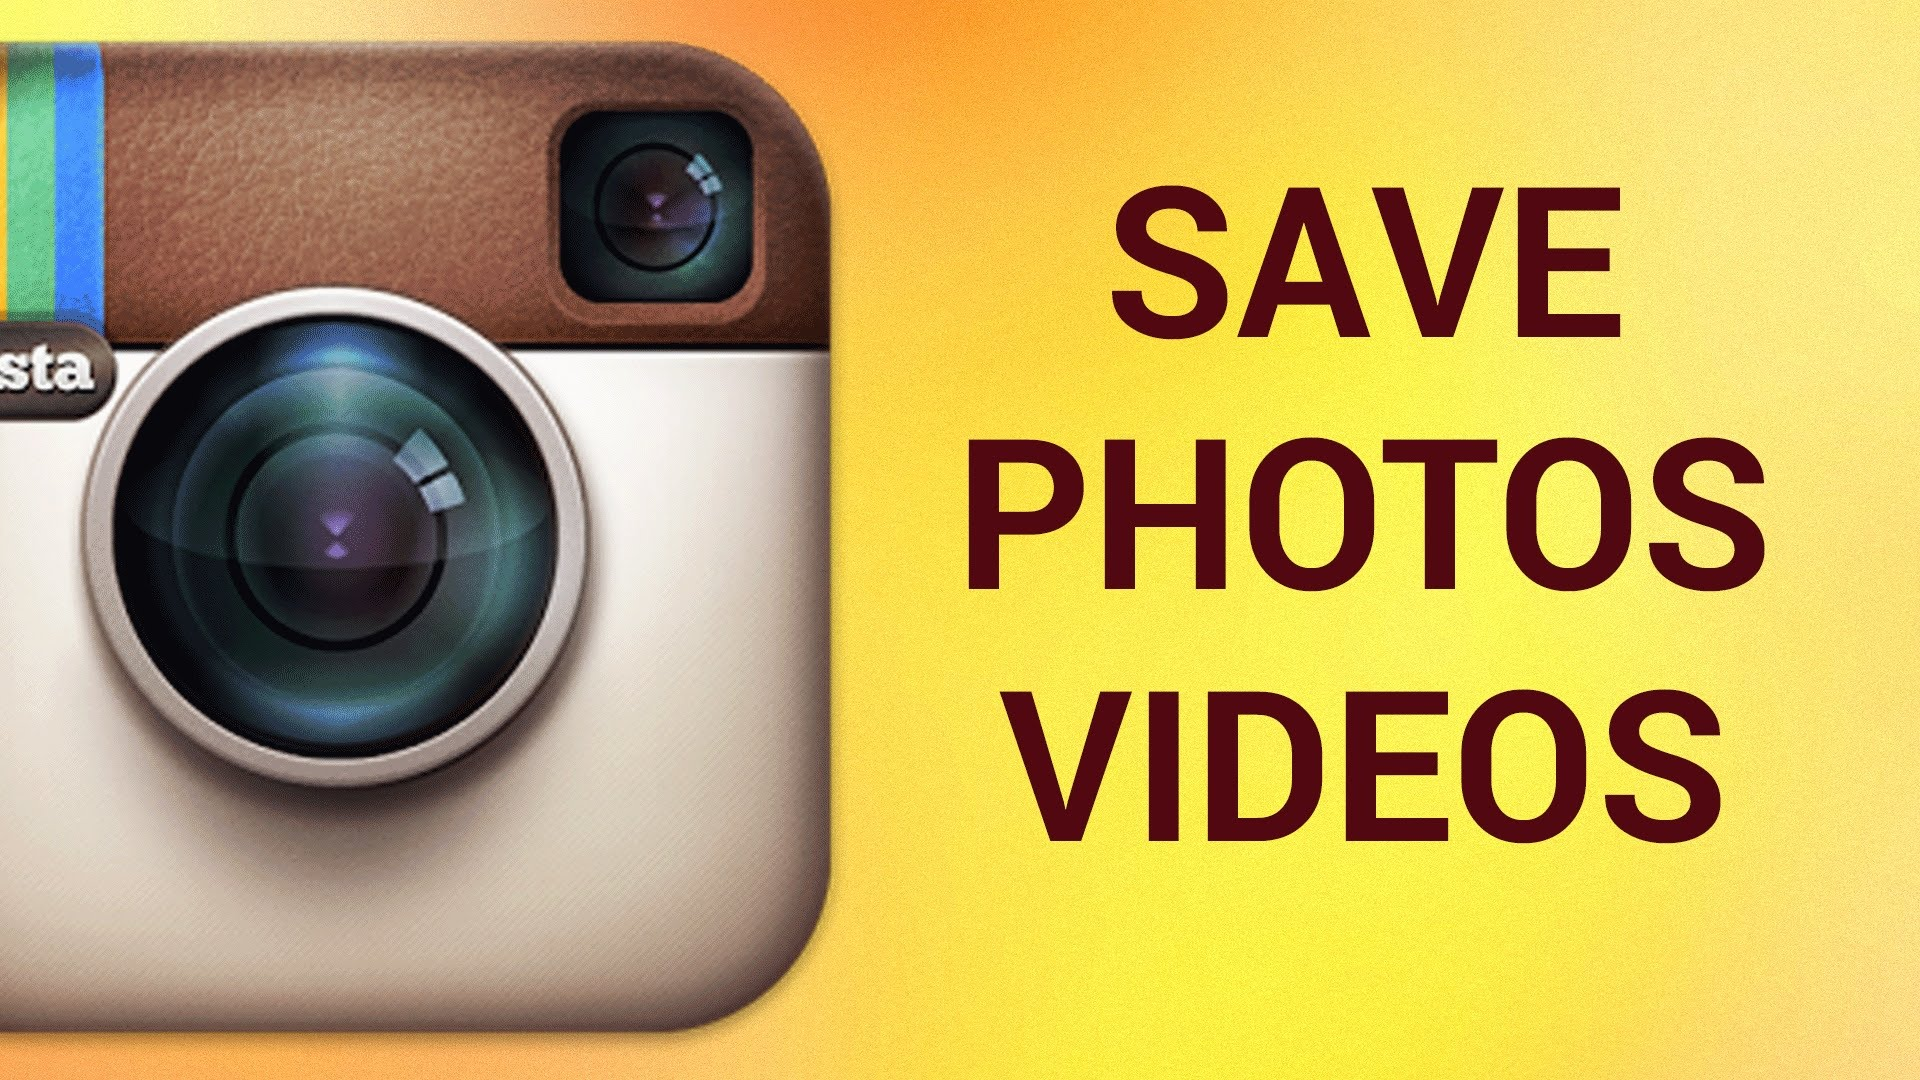 How to Save Videos or Photos from Instagram on Your iPhone